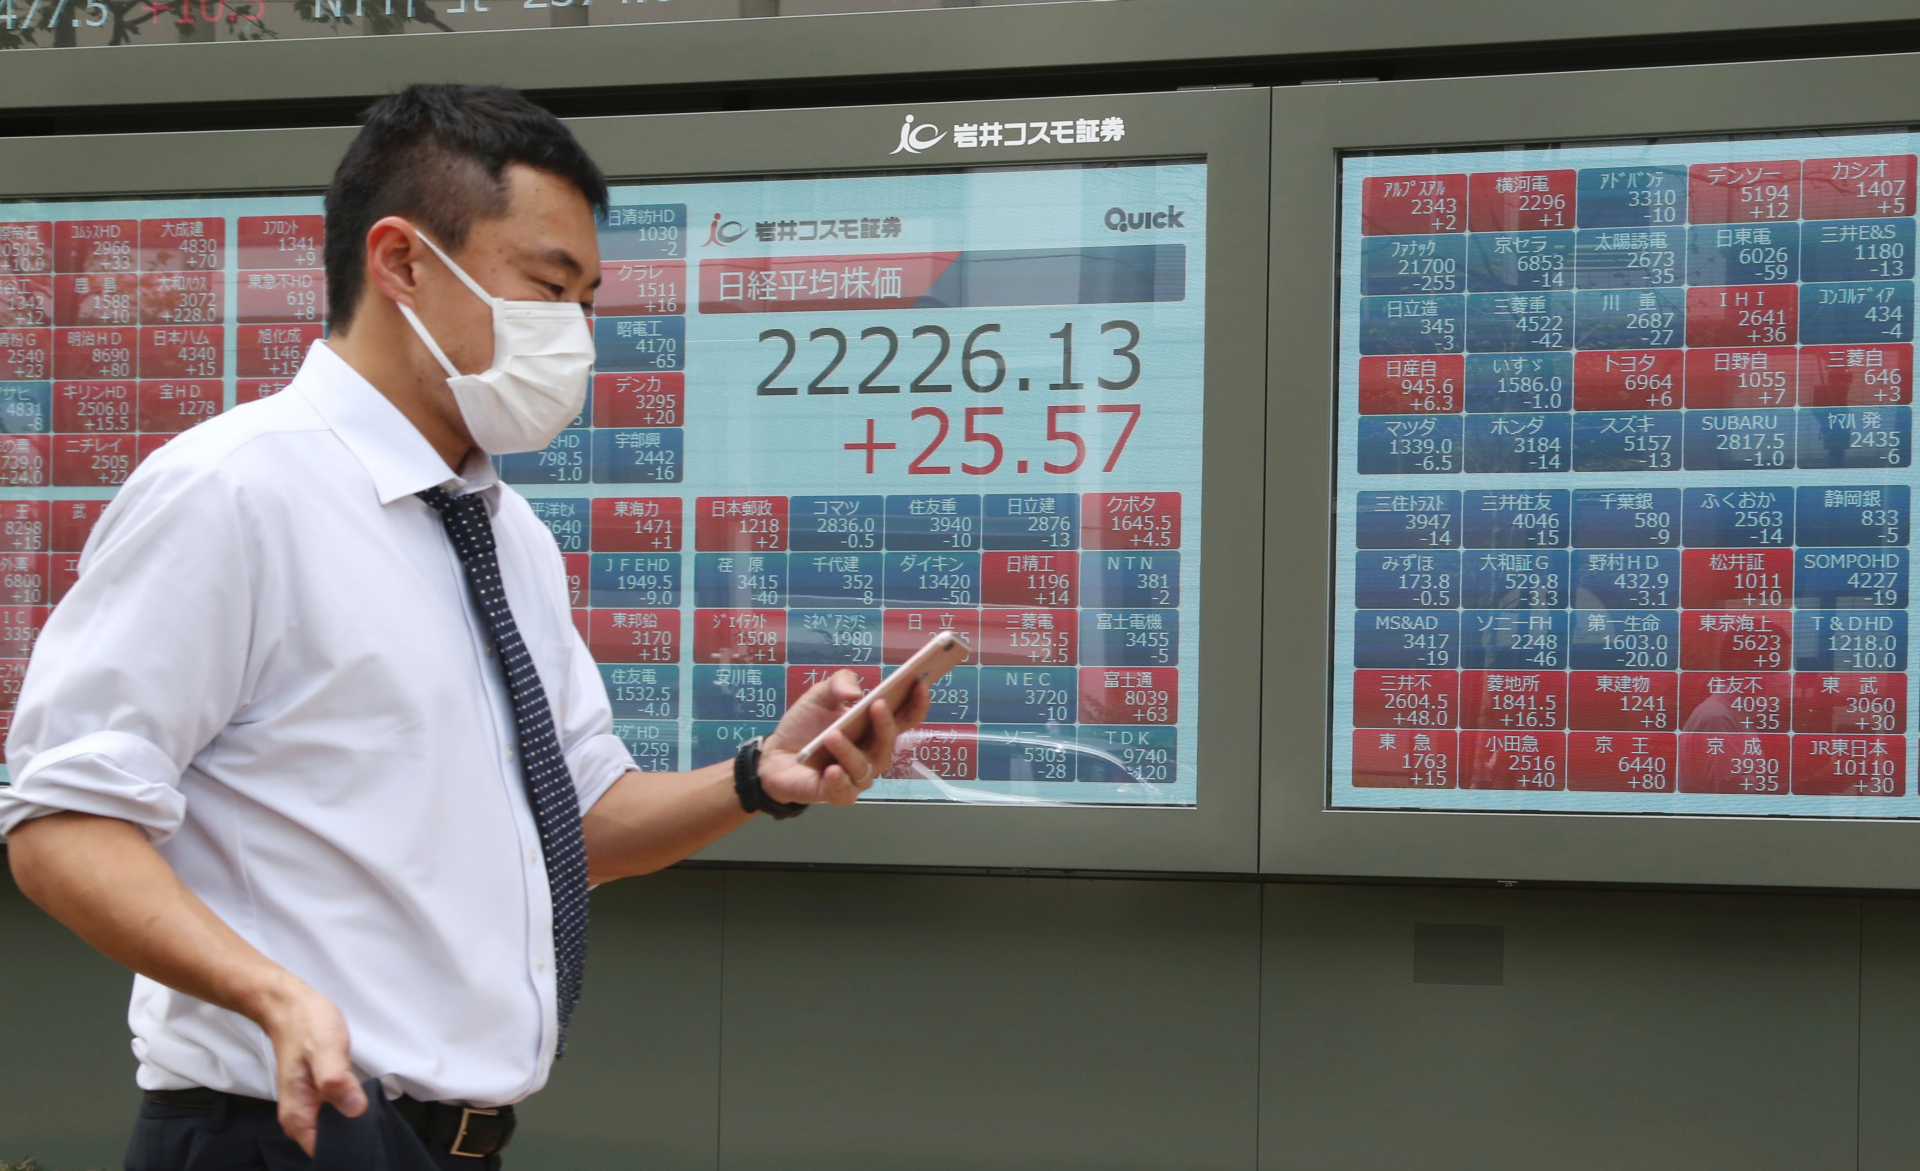 Asian markets lower, oil rises on Iran concerns